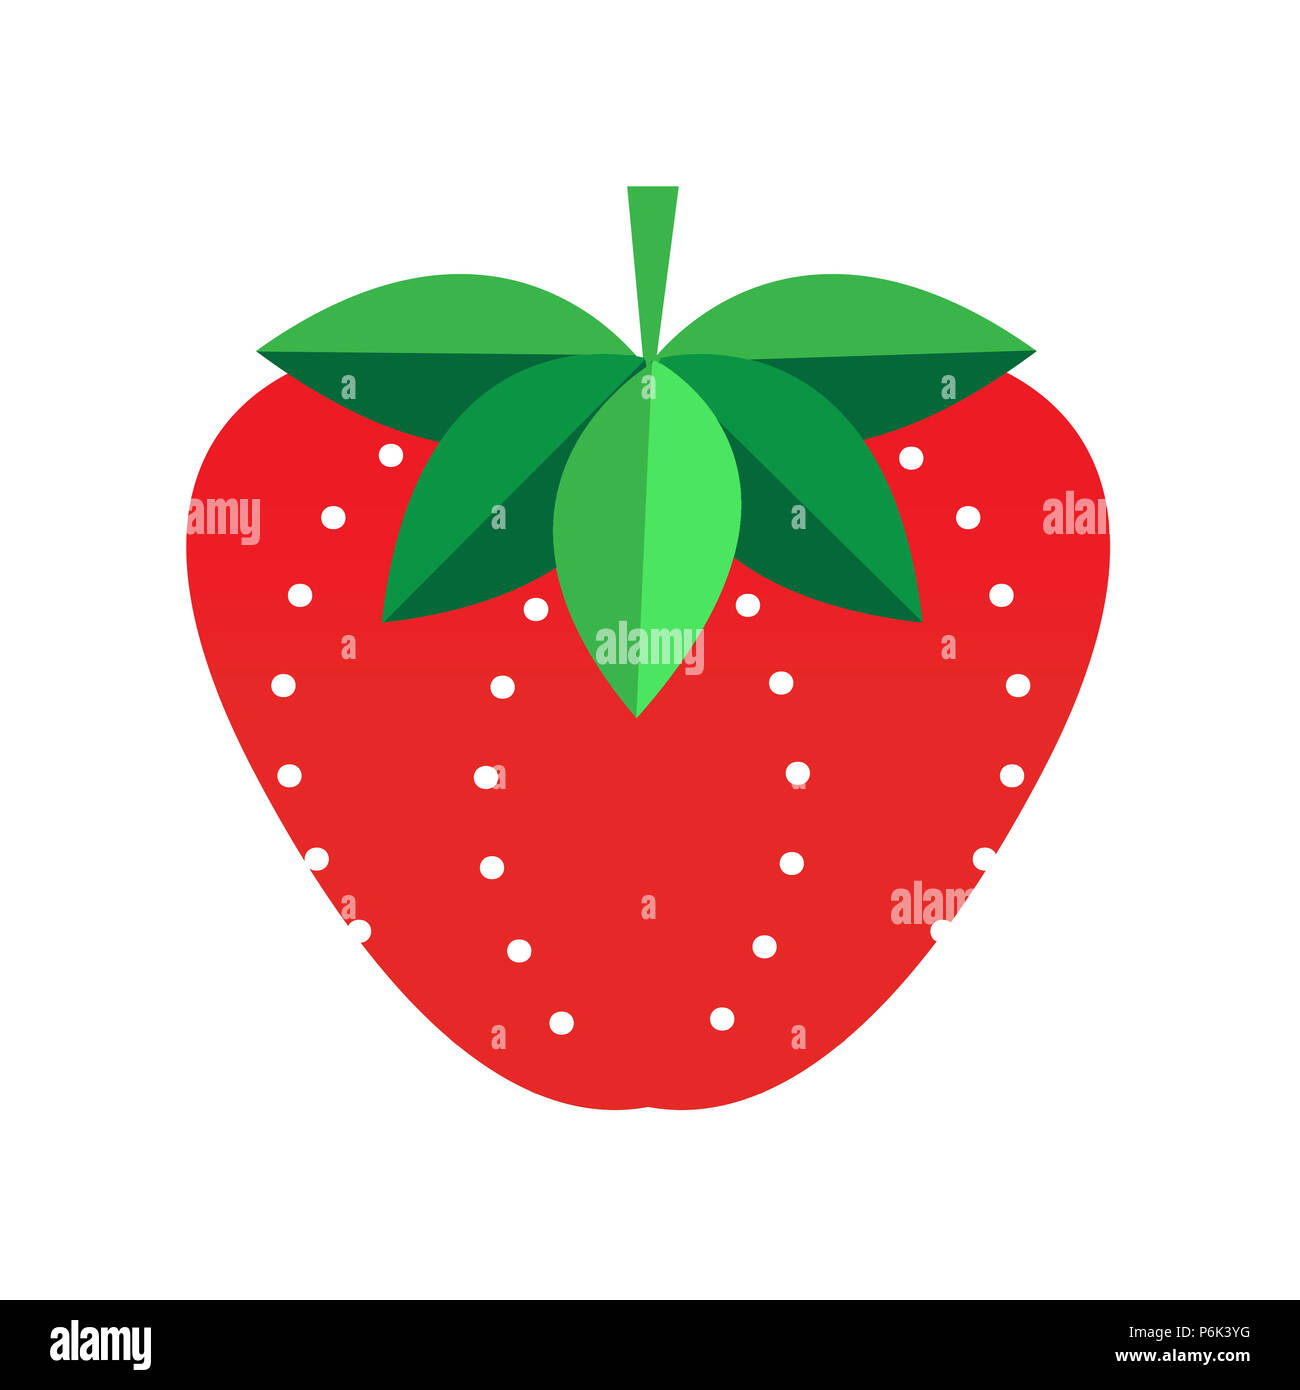 Illustration of a strawberry against a white background. Stylized leaf and seed patterns. Modern, fresh, fun. - Stock Image